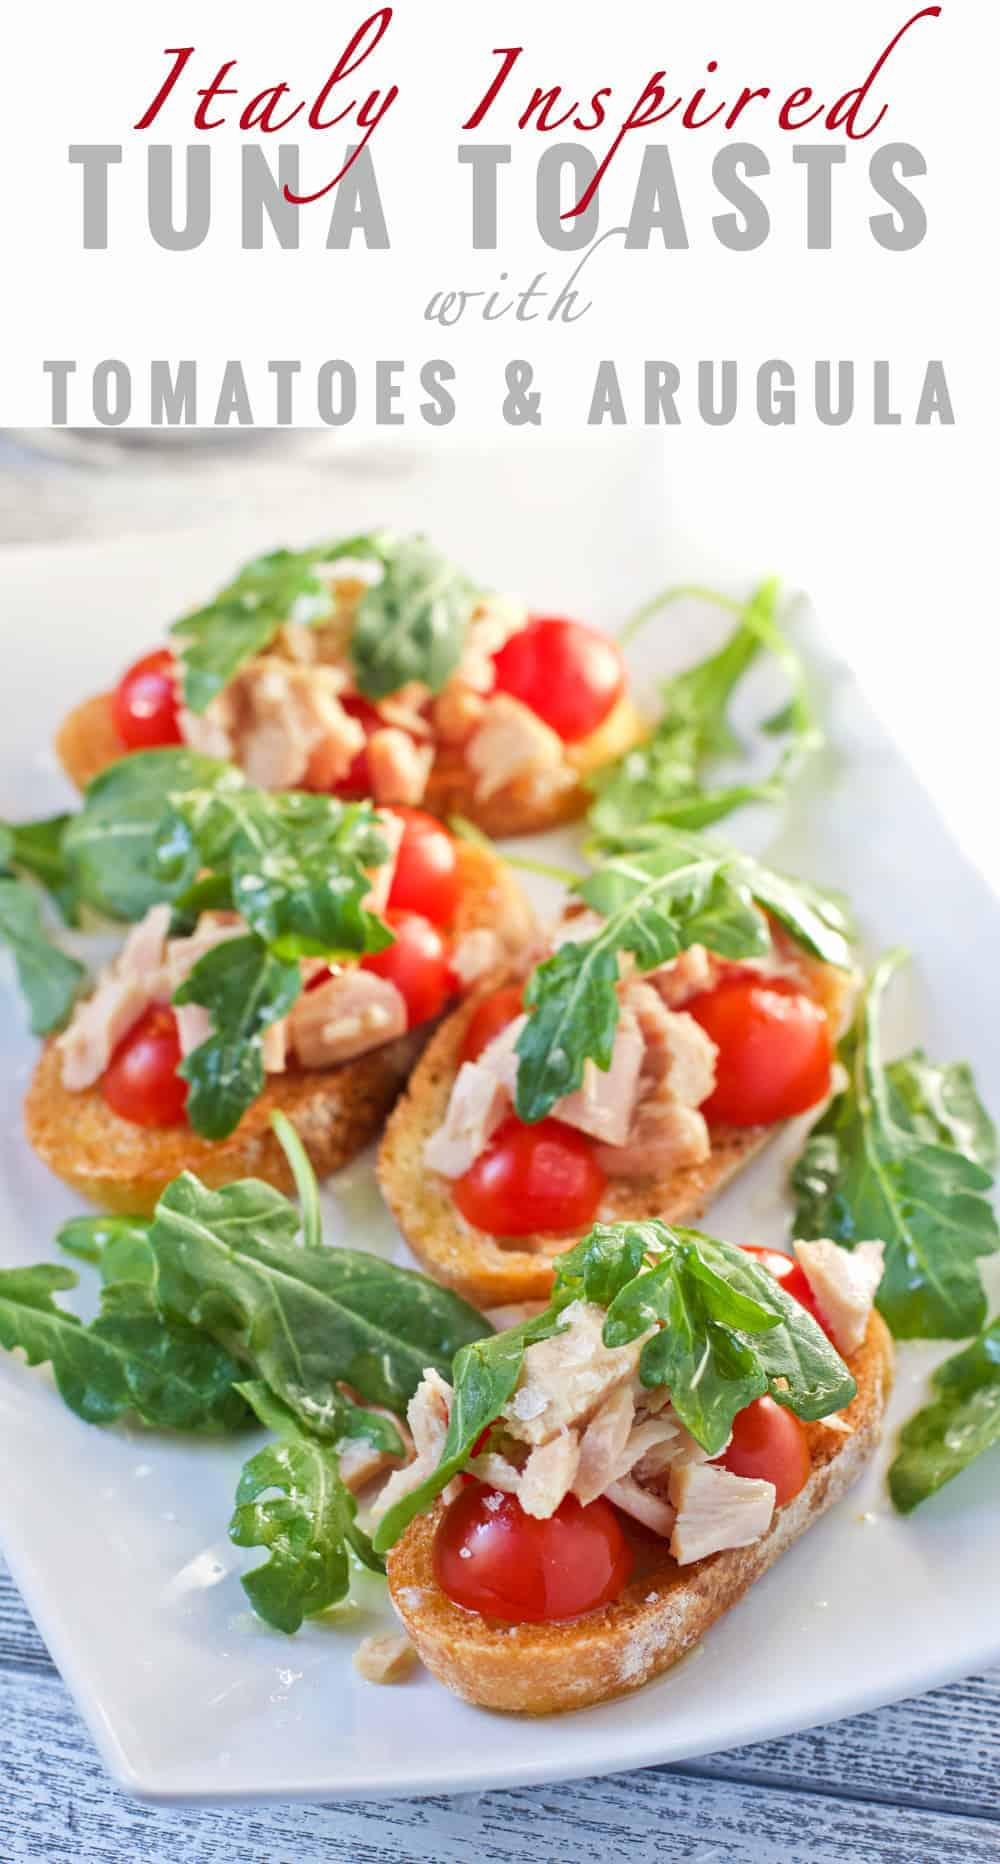 Italy Inspired Tuna Toasts with Tomatoes and Arugula